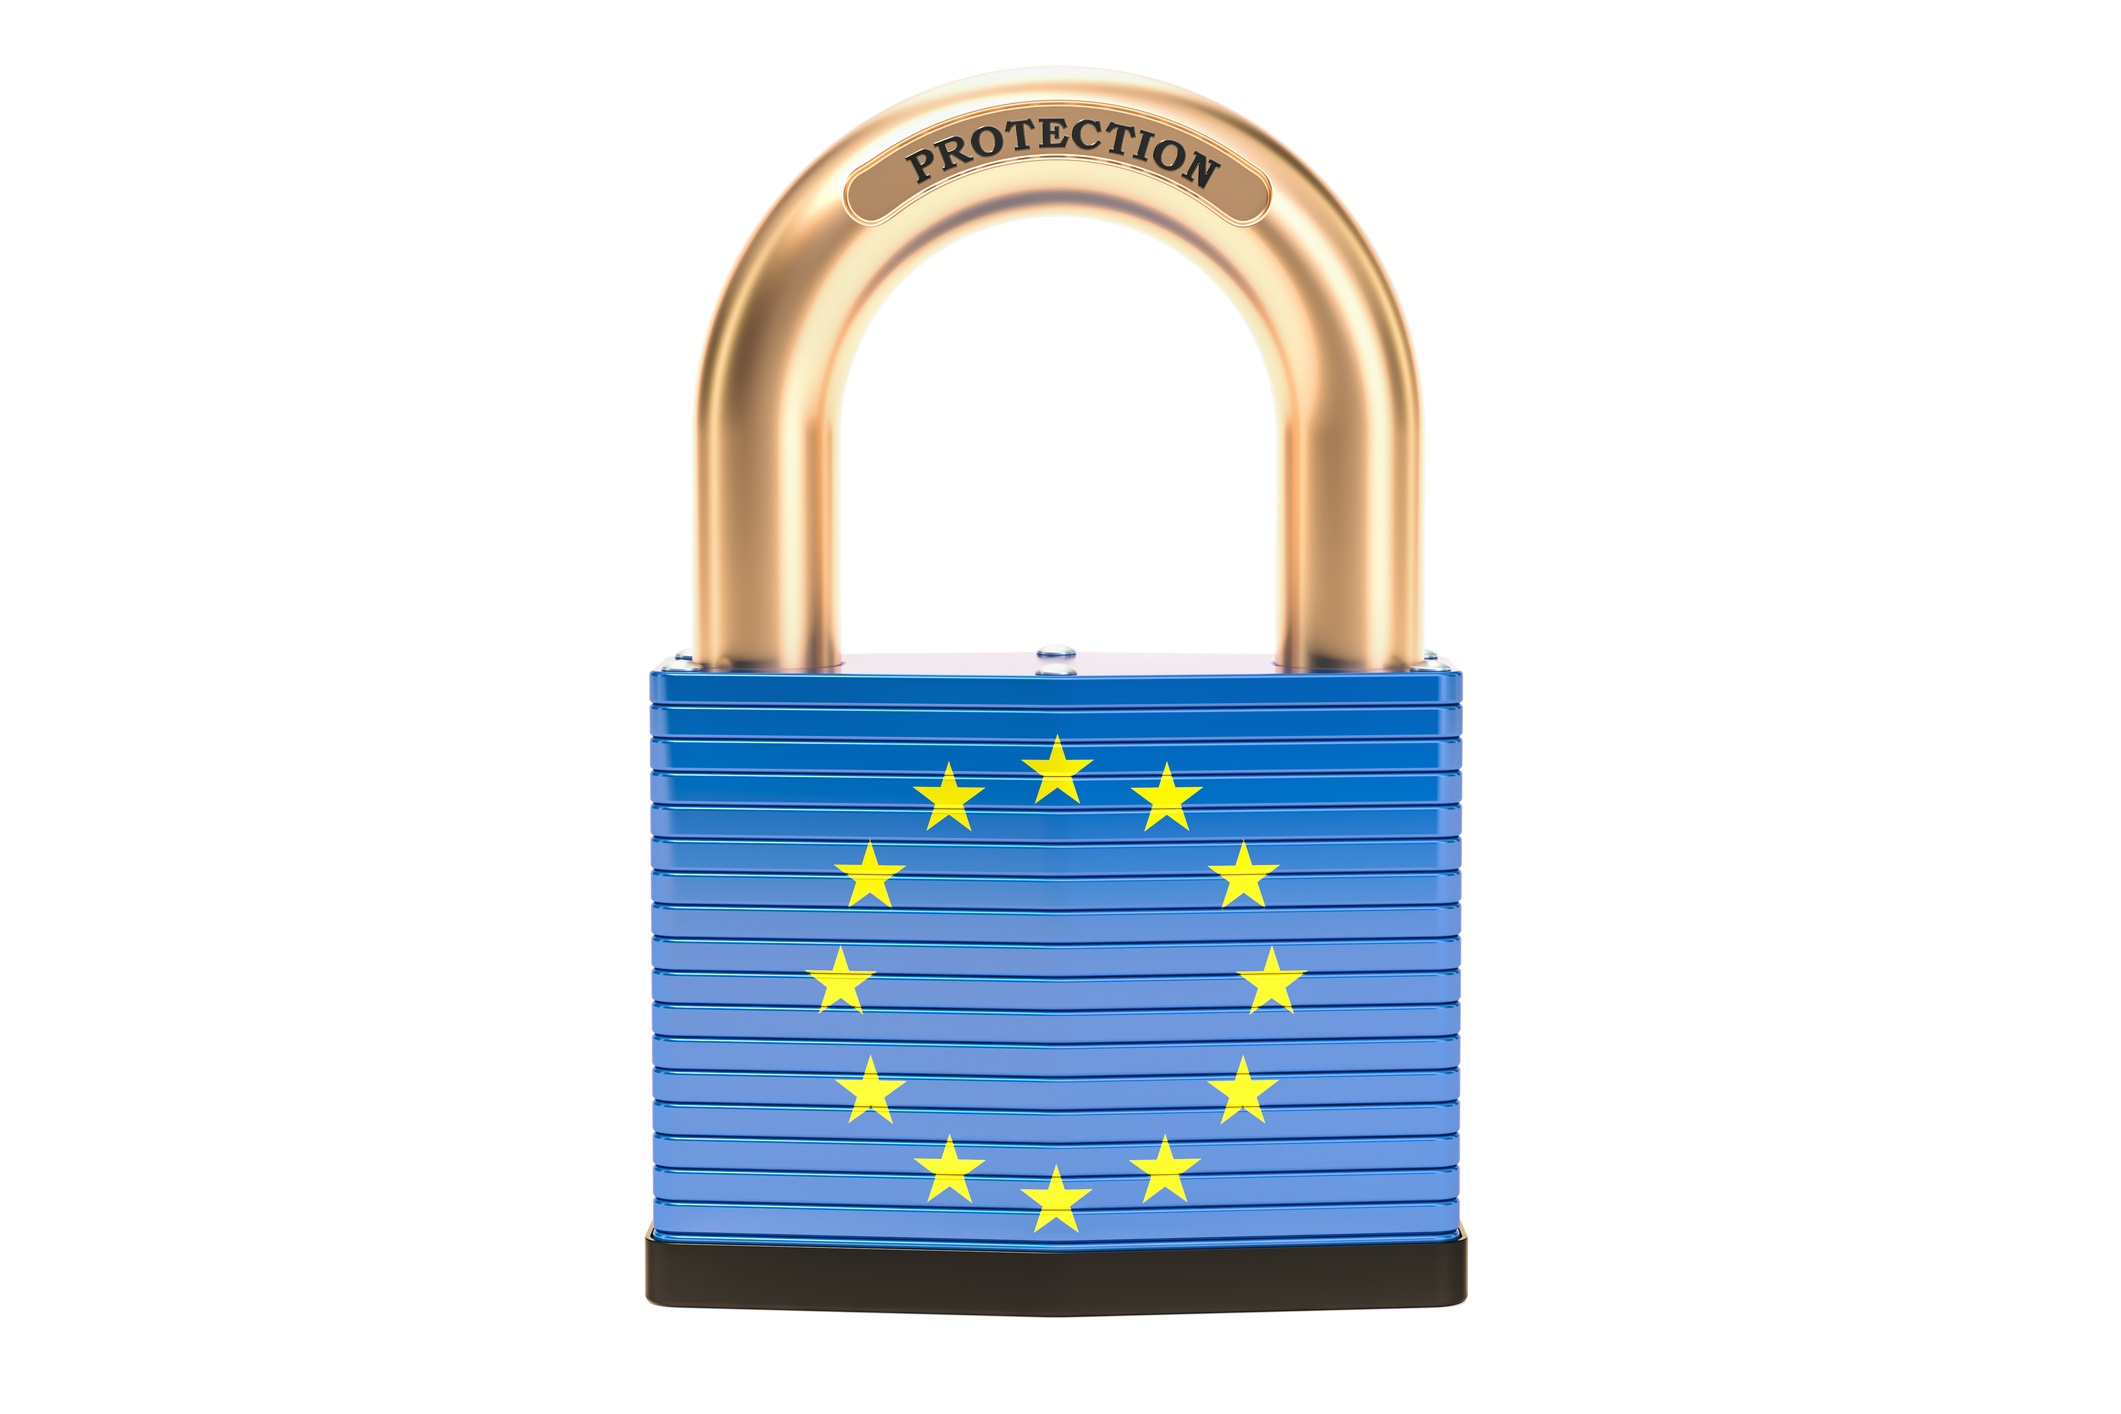 Update on the EU-U.S. Privacy Shield's Status